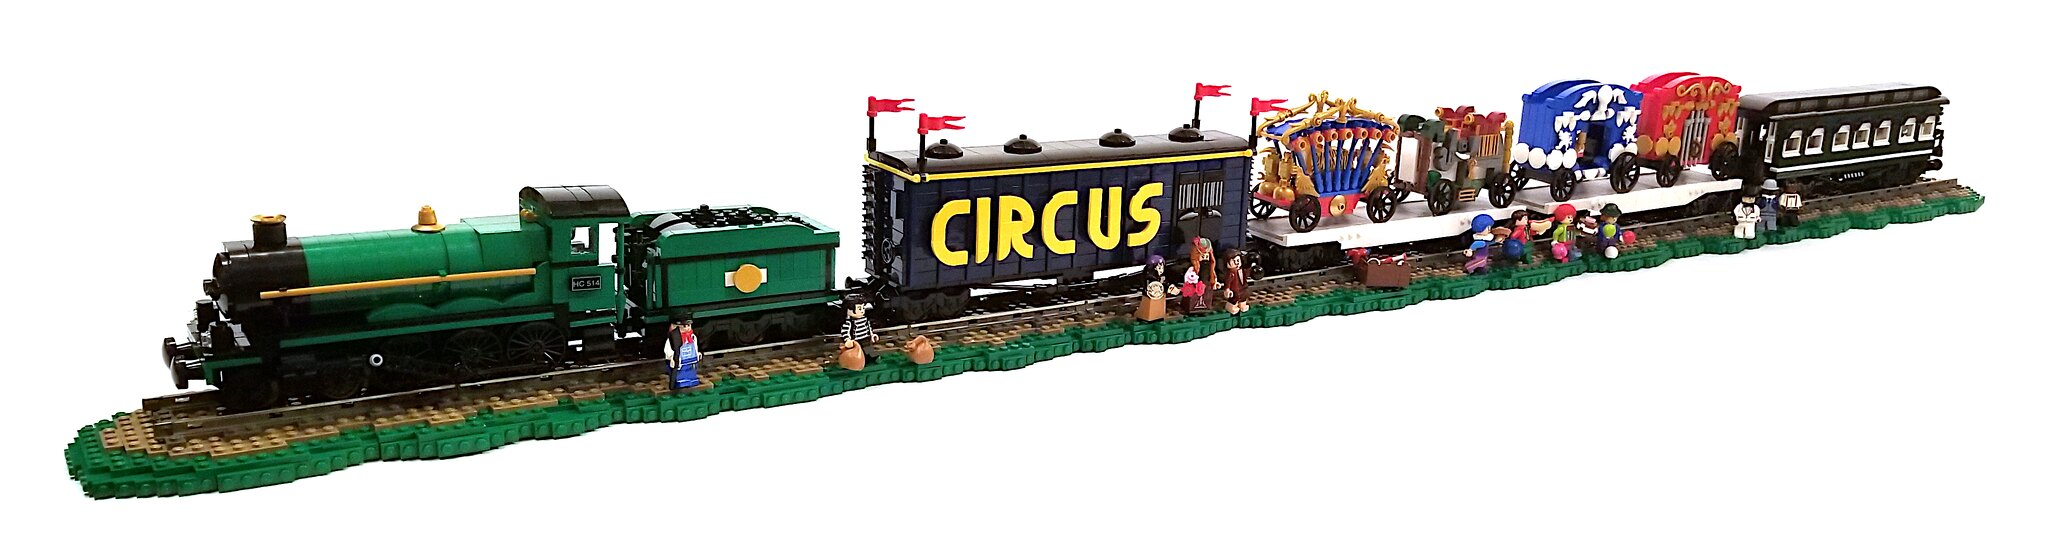 Porter Brothers Circus Train